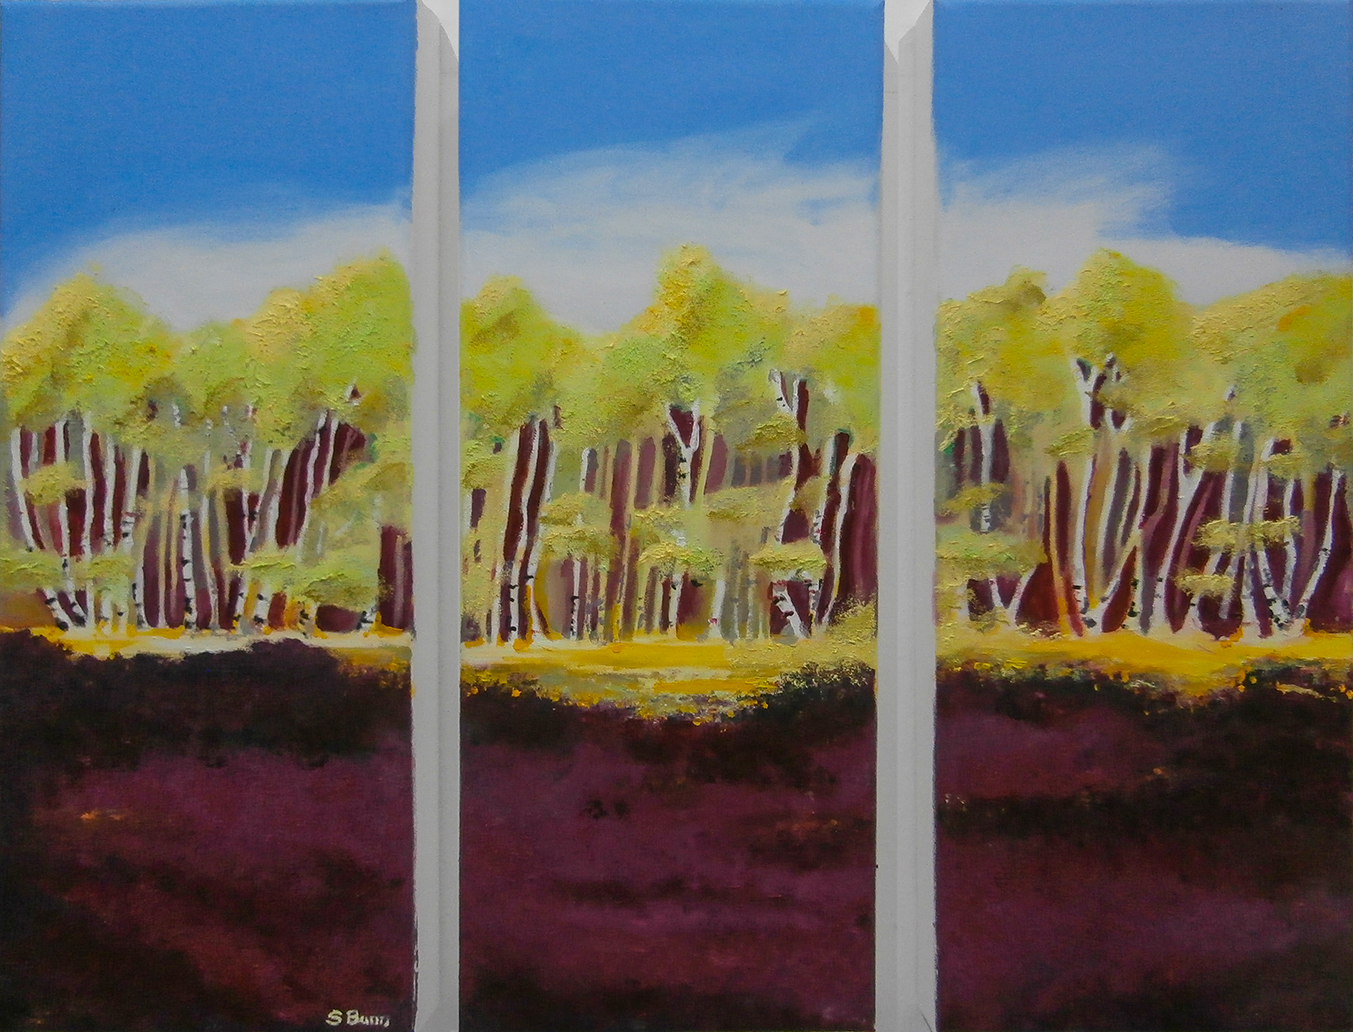 Silver Birch light & shade 3 parts